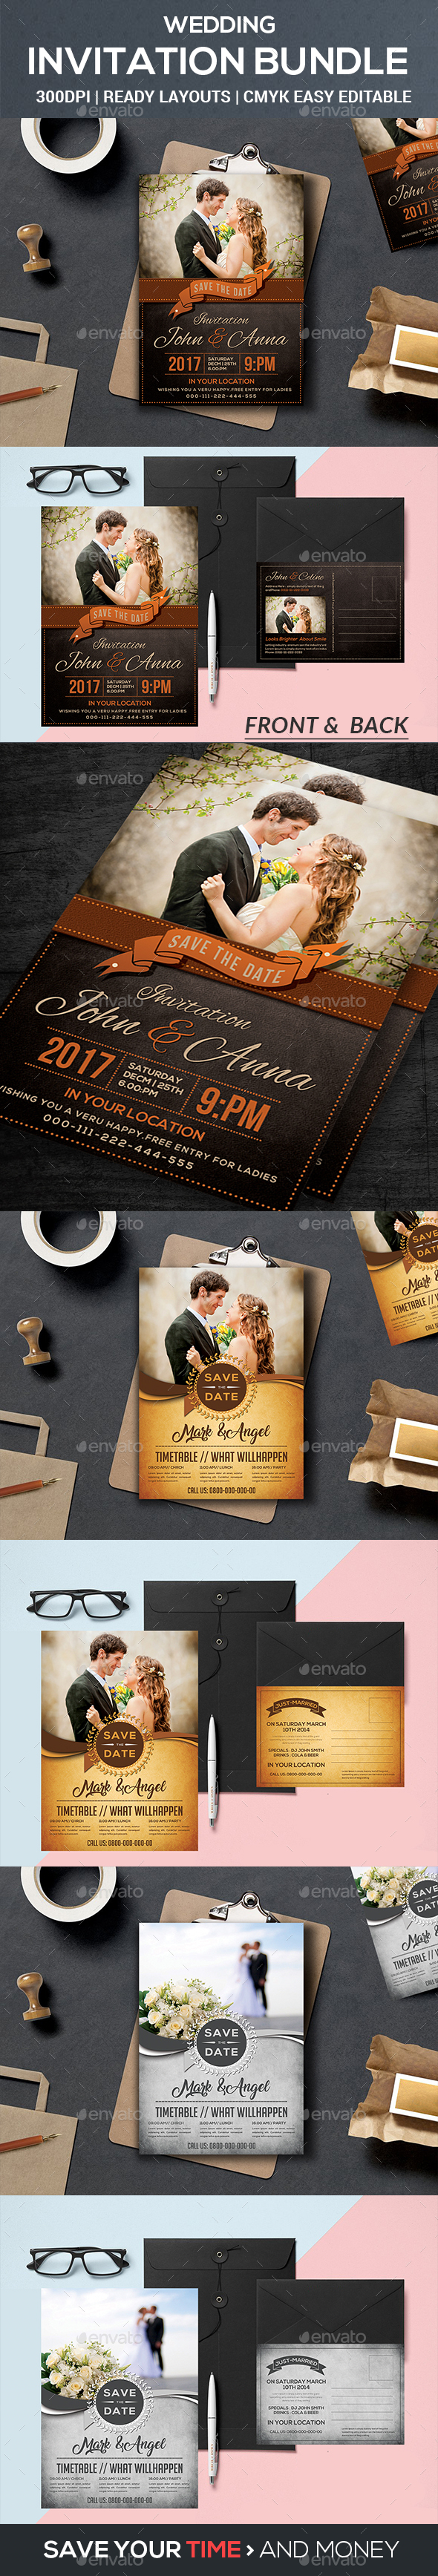 Wedding Invitation Bundle - Weddings Cards & Invites